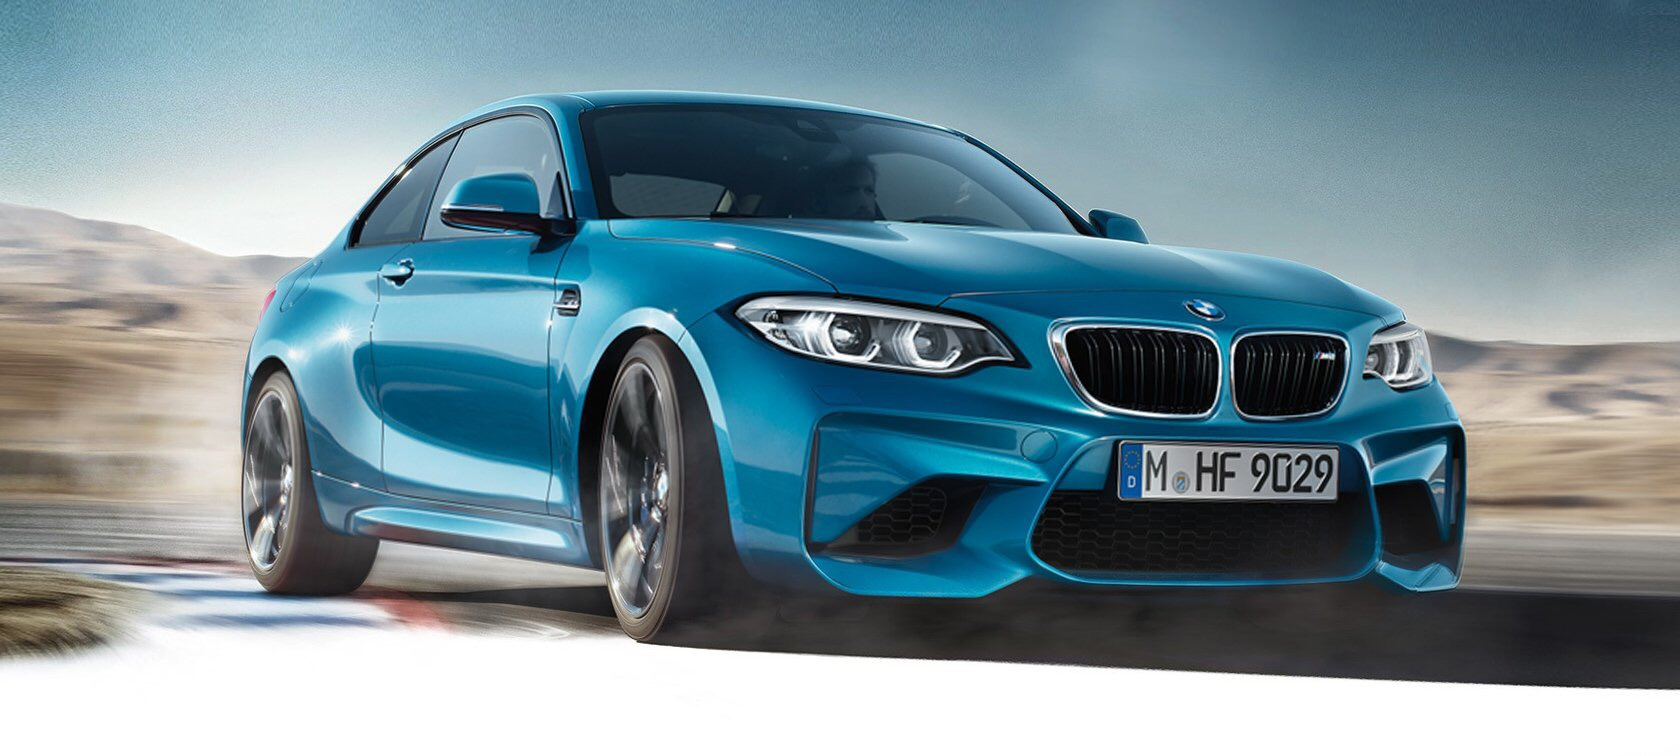 2018 BMW serie 2 coupe/cabrio facelift 36